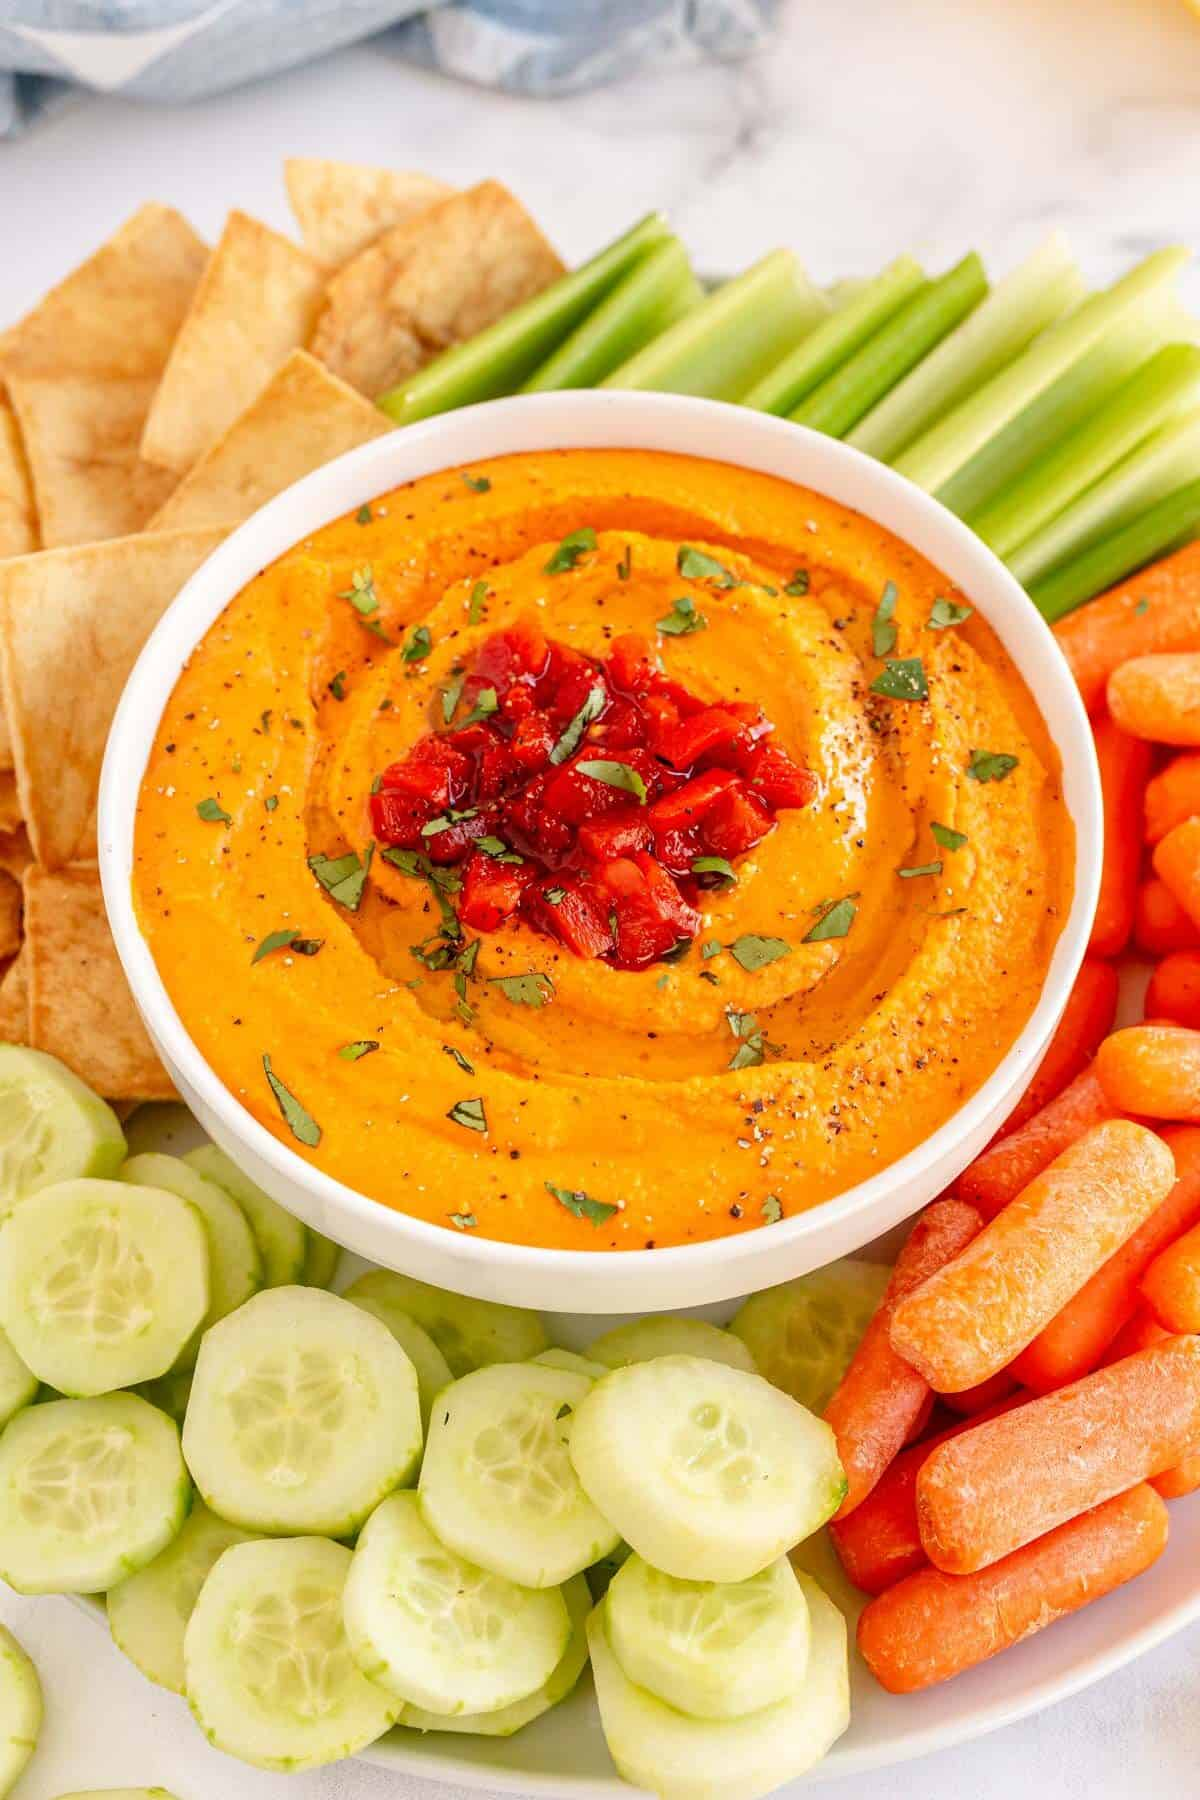 hummus with pita, carrots, celery and cucumbers